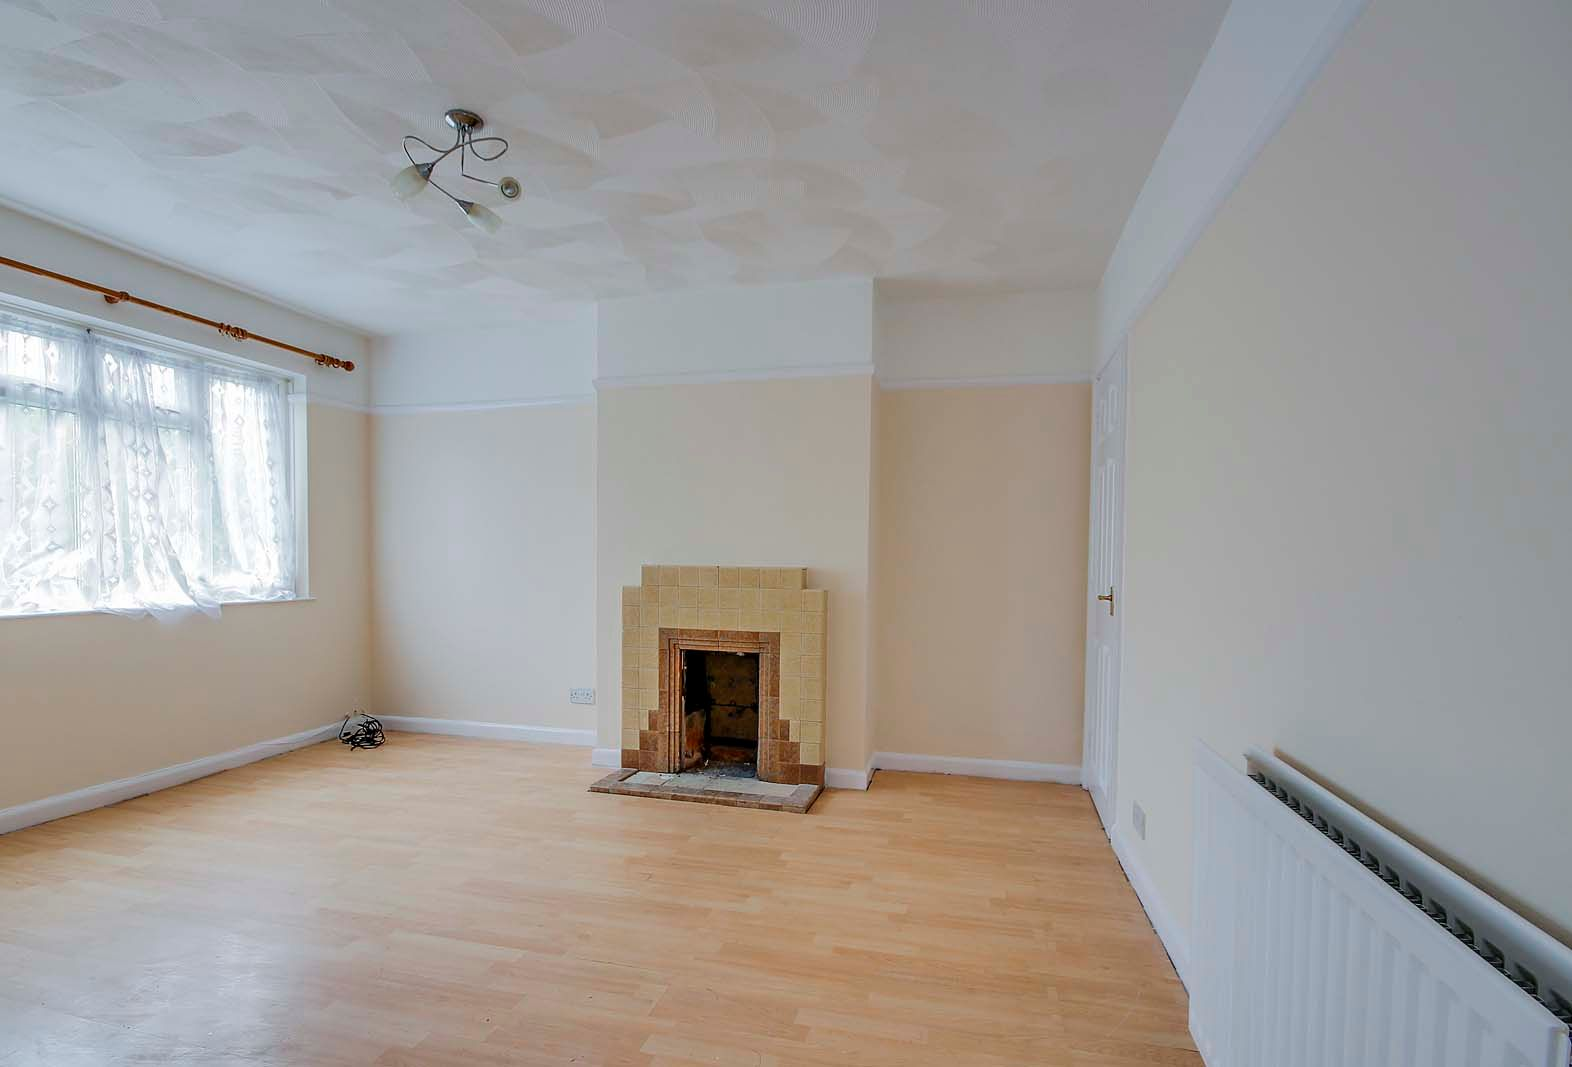 2 bed Apartment to rent in East Preston - Living room (Property Image 2)